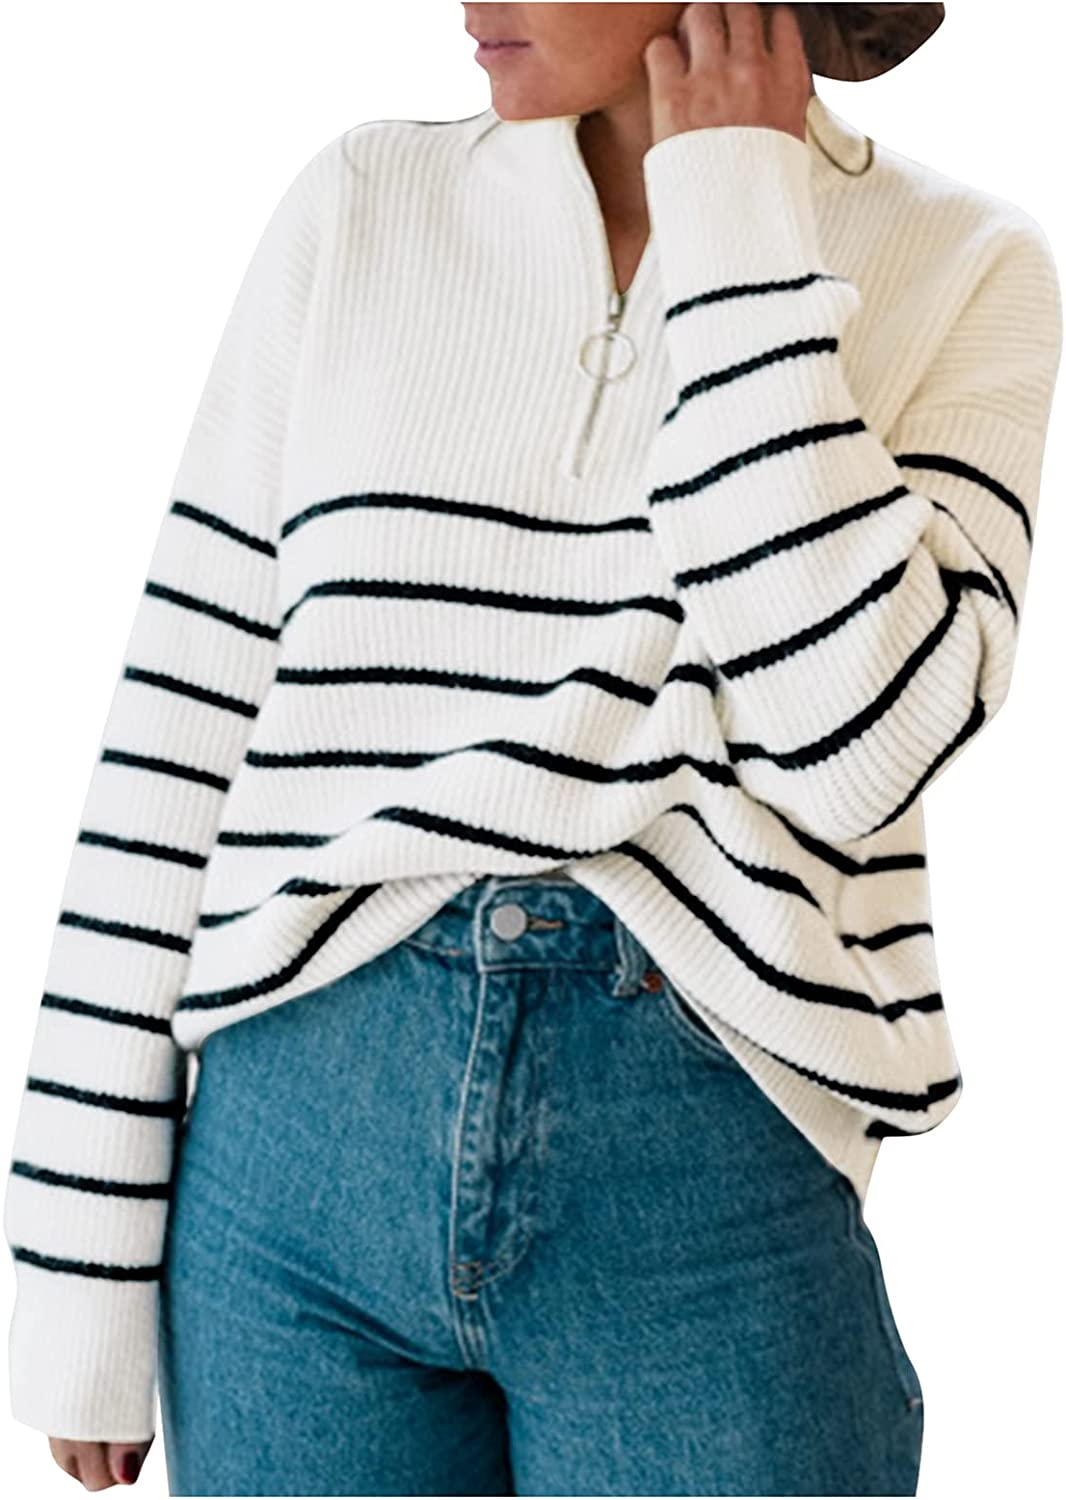 Women's Crewneck Stripe Pullover Sweaters Casual Loose Long Sleeve 1/4 Zip Up Cardigan Tops Color Matching Shirts